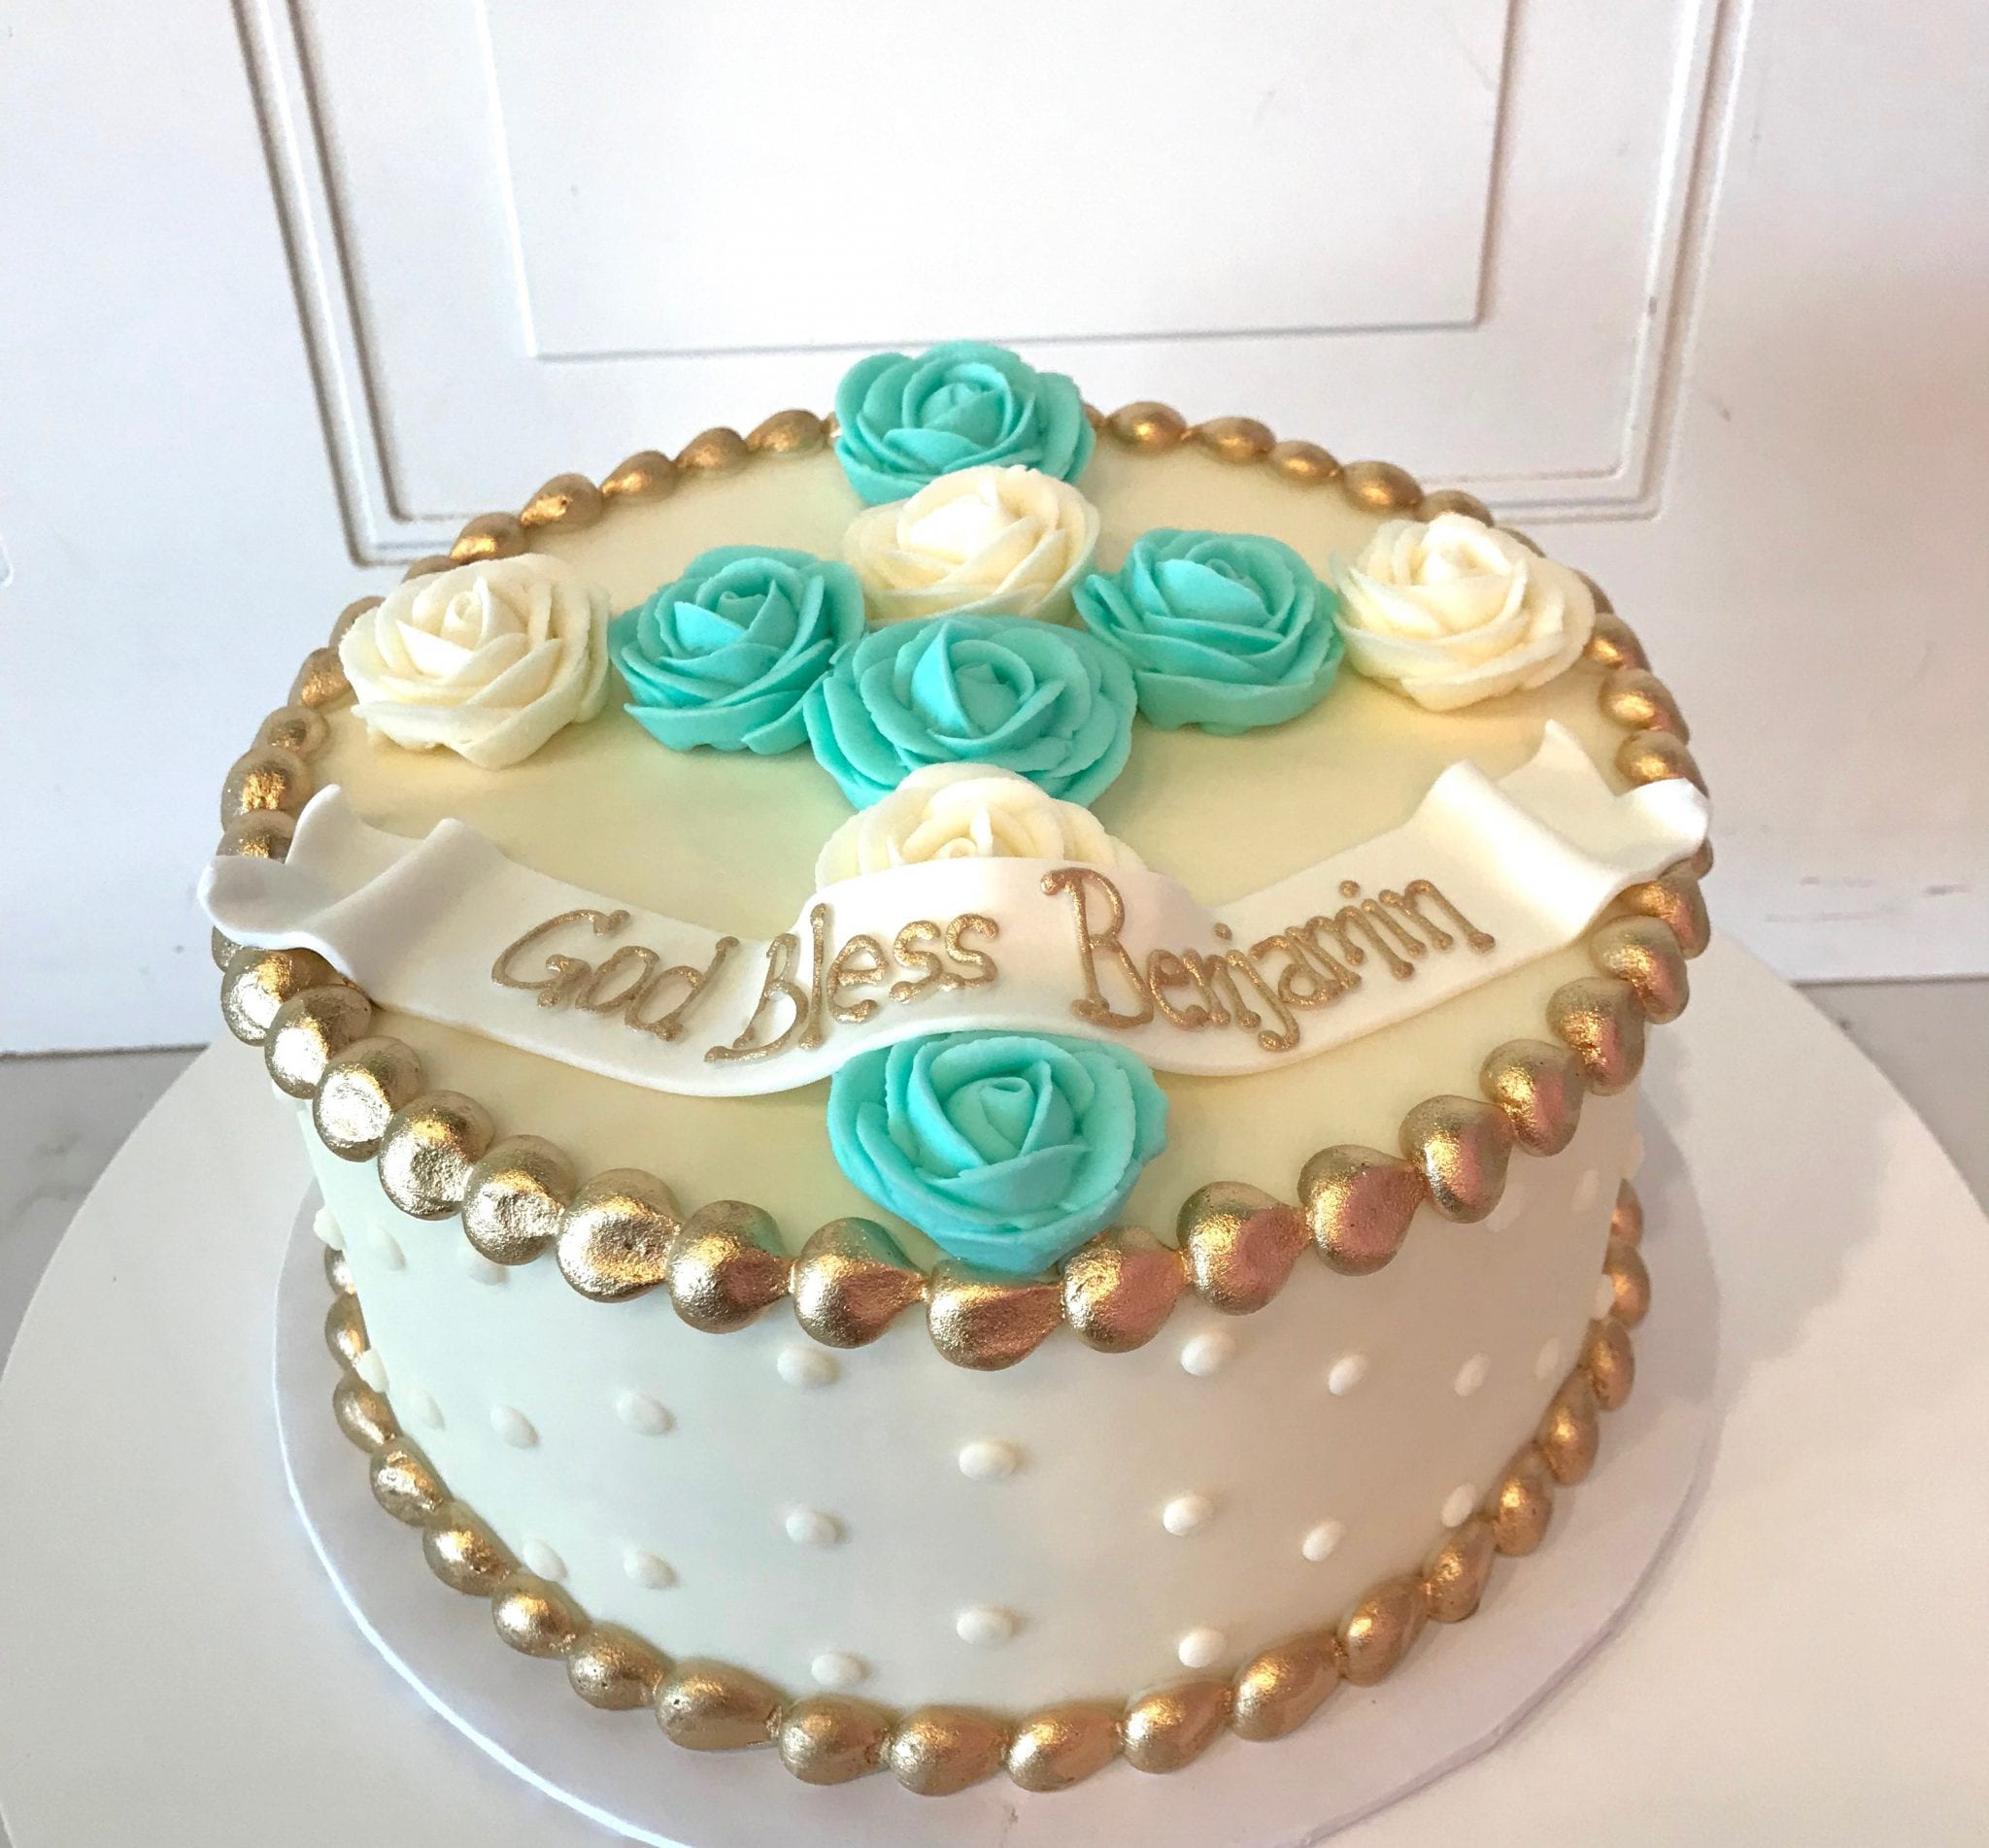 Aqua, Gold and White Baptism or First Communion Cake | 3 Sweet Girls Cakery